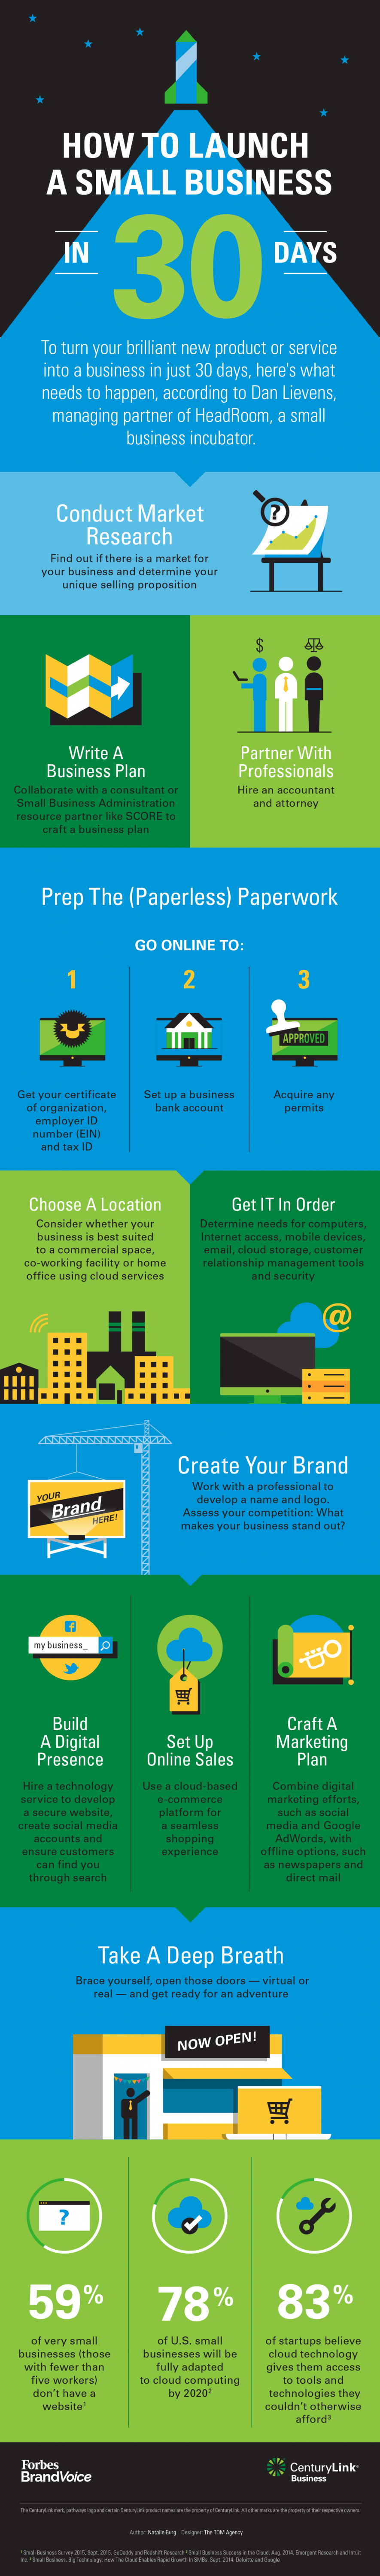 How To Launch A Small Business In 30 Days #Infographic